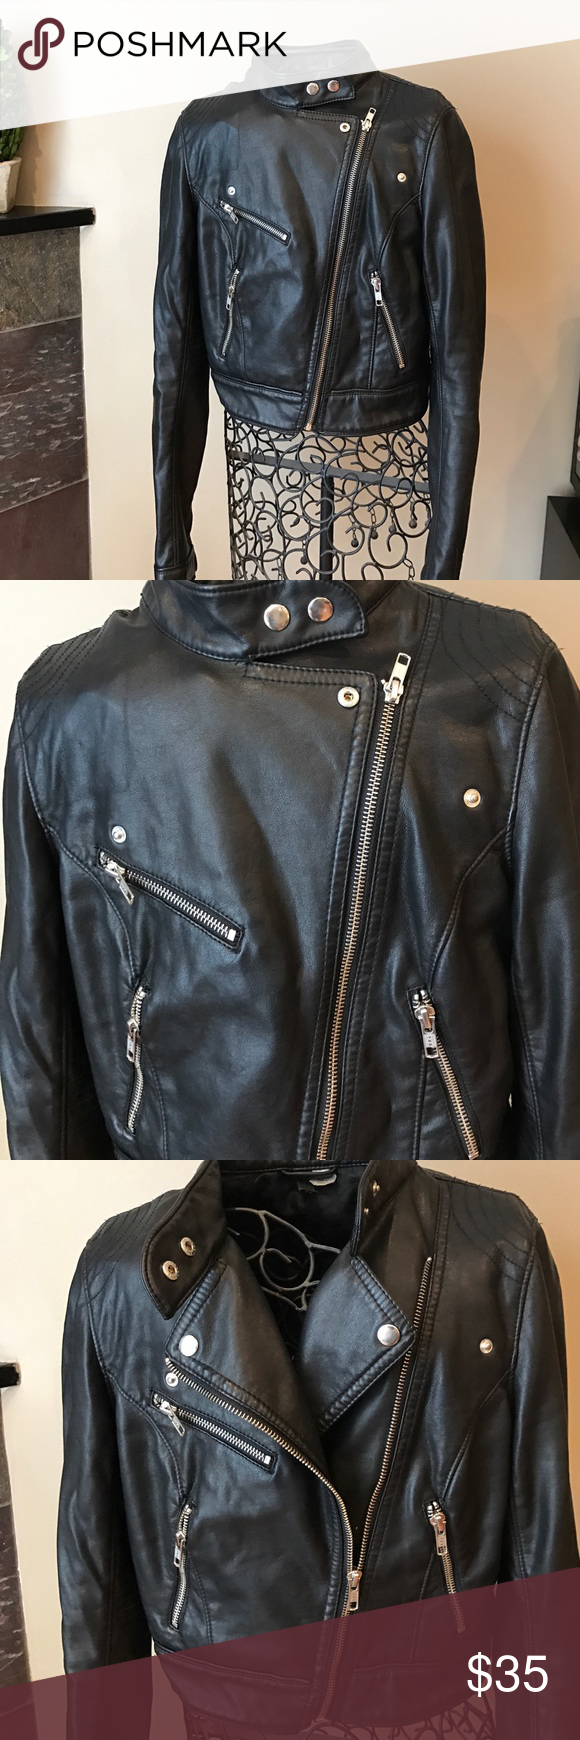 H&M Black Faux Leather Cropped Biker Jacket Cropped and